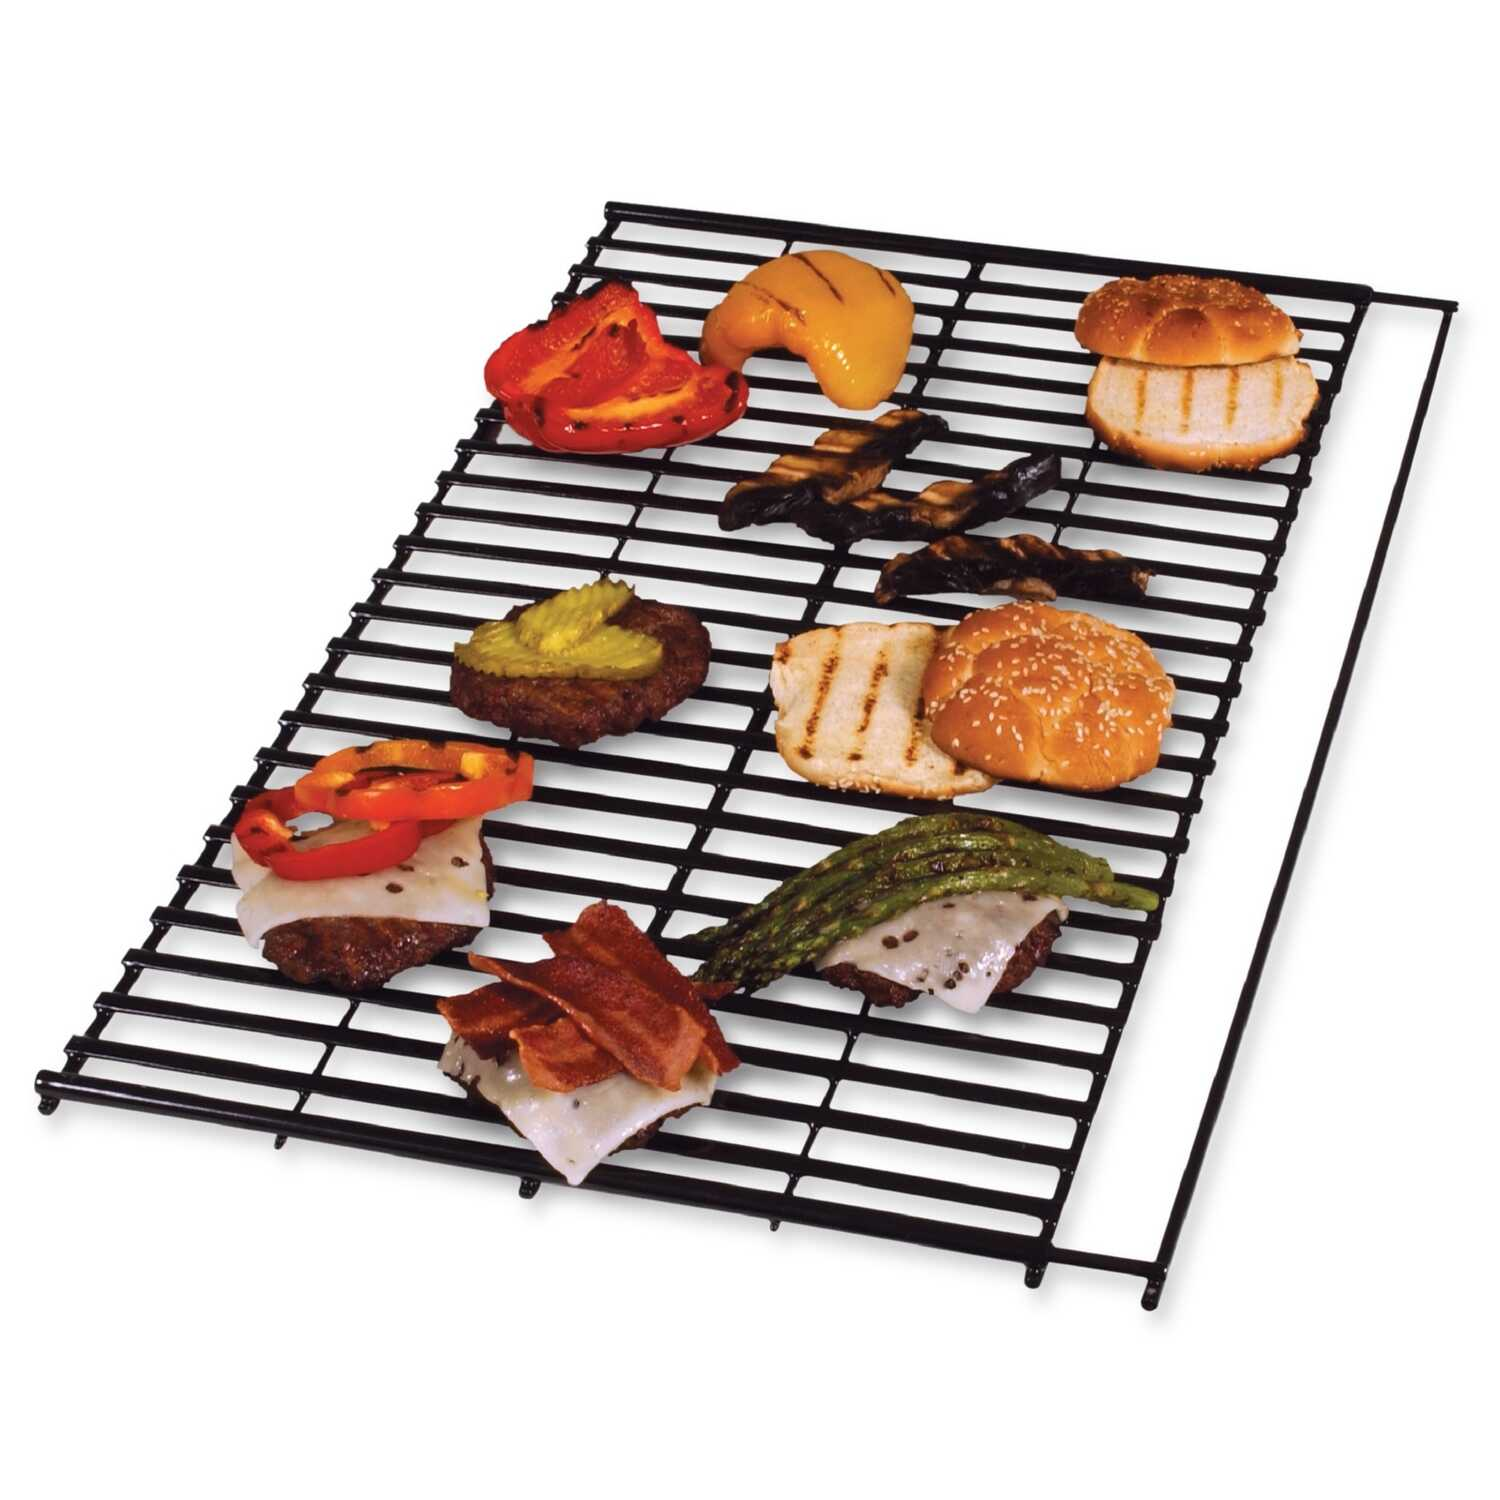 Char-Broil  Steel Porcelain  Grill Grate  0.68 in. H x 25 in. W x 14.19 in. L